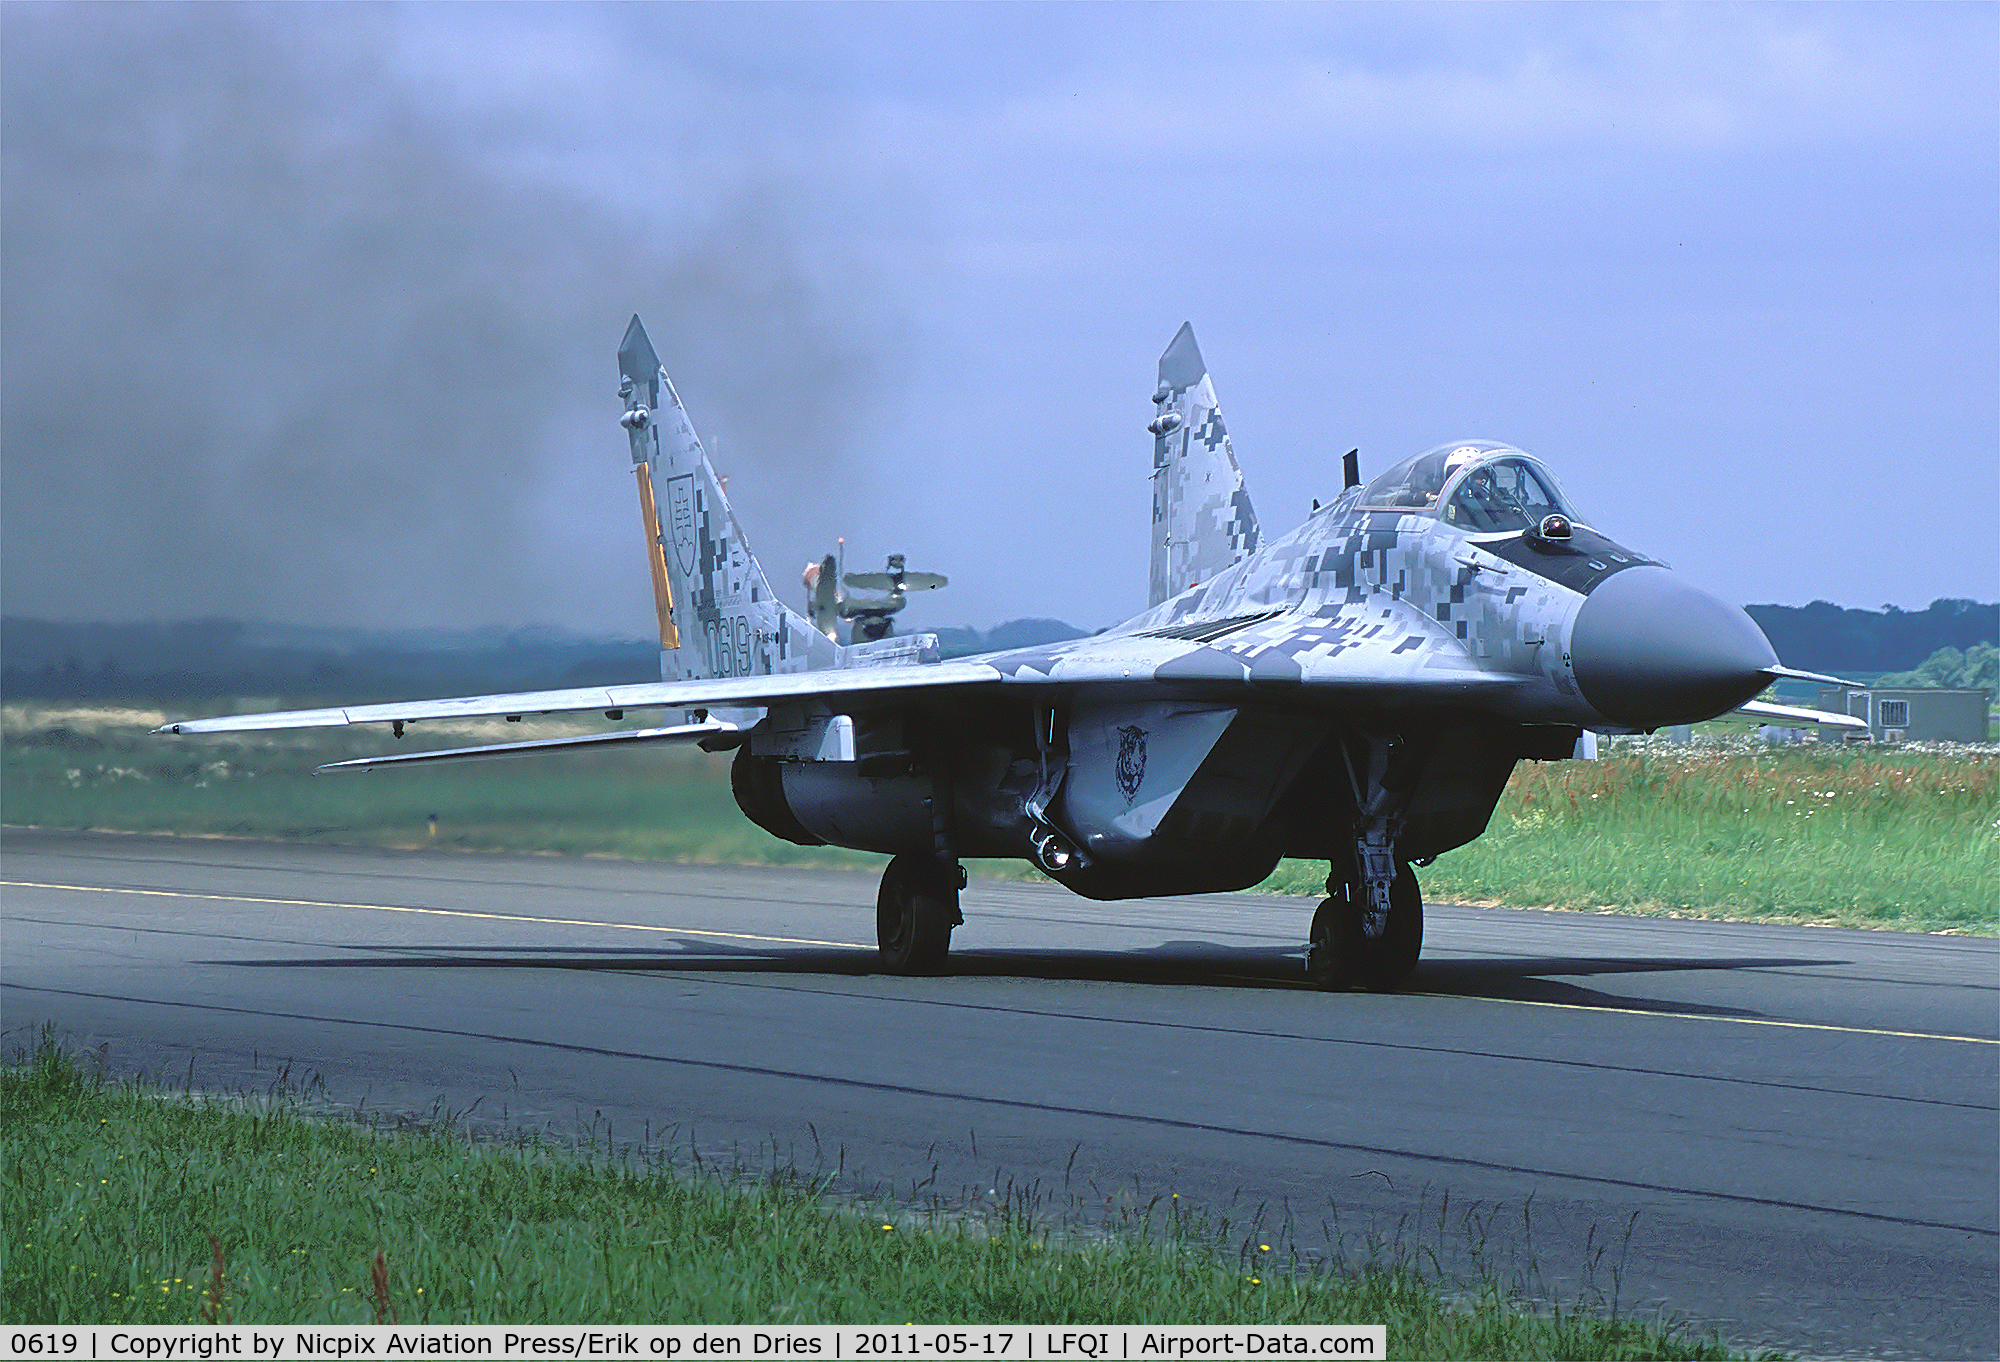 0619, Mikoyan-Gurevich MiG-29AS C/N 2960535406/4713, Slowak ia AF MiG-29AS Fulkcrum showing its' digital camouflage scheme, taxies out during the NTM-2011./